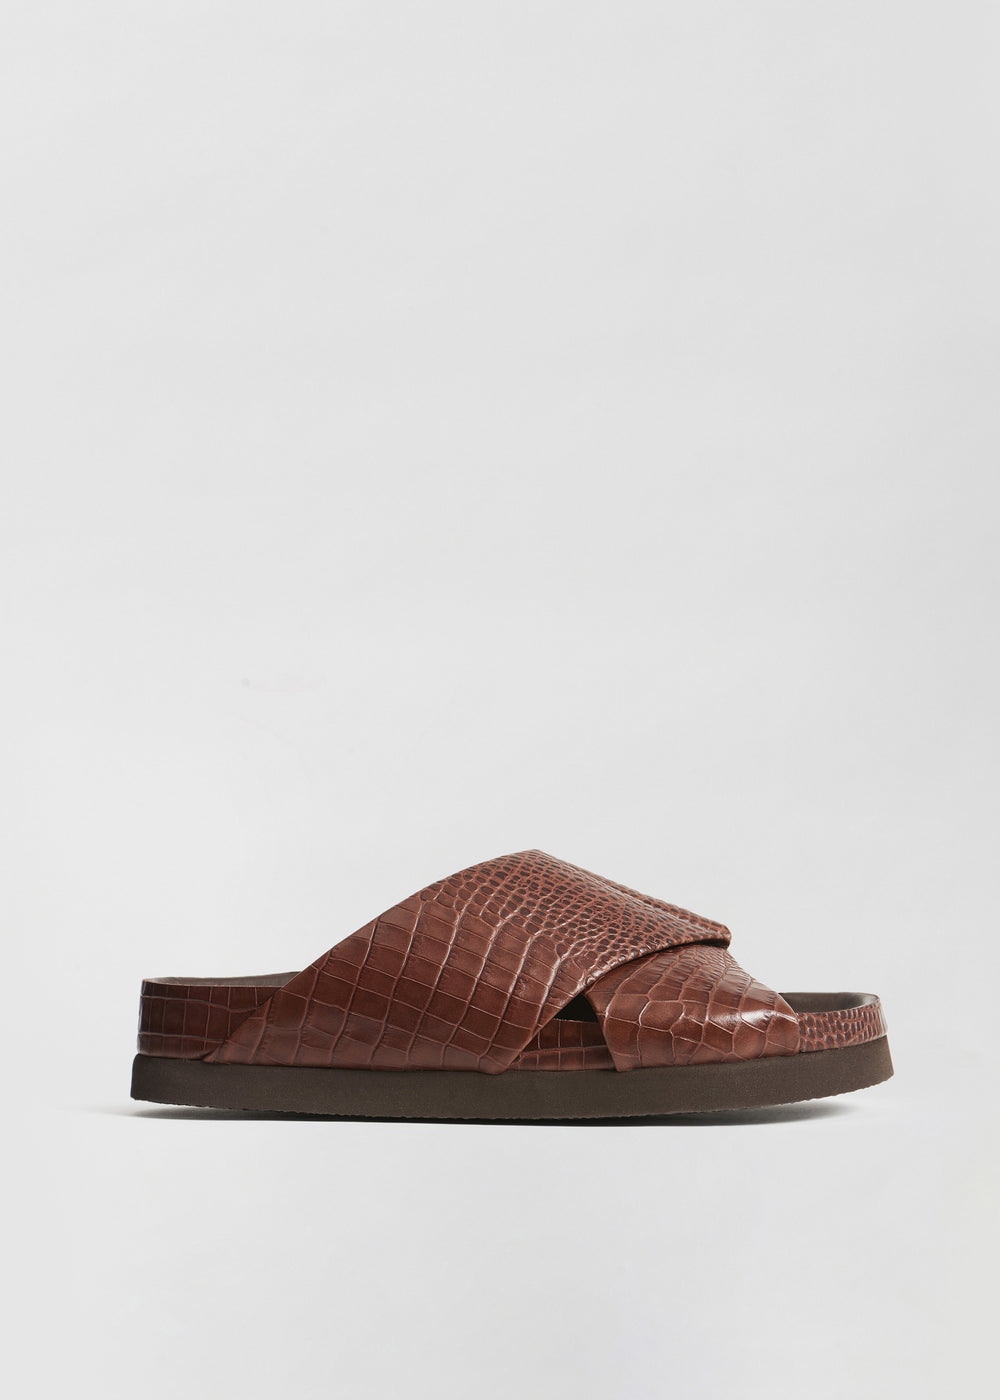 Slide Sandal in Embossed Leather - Dark Brown - CO Collections